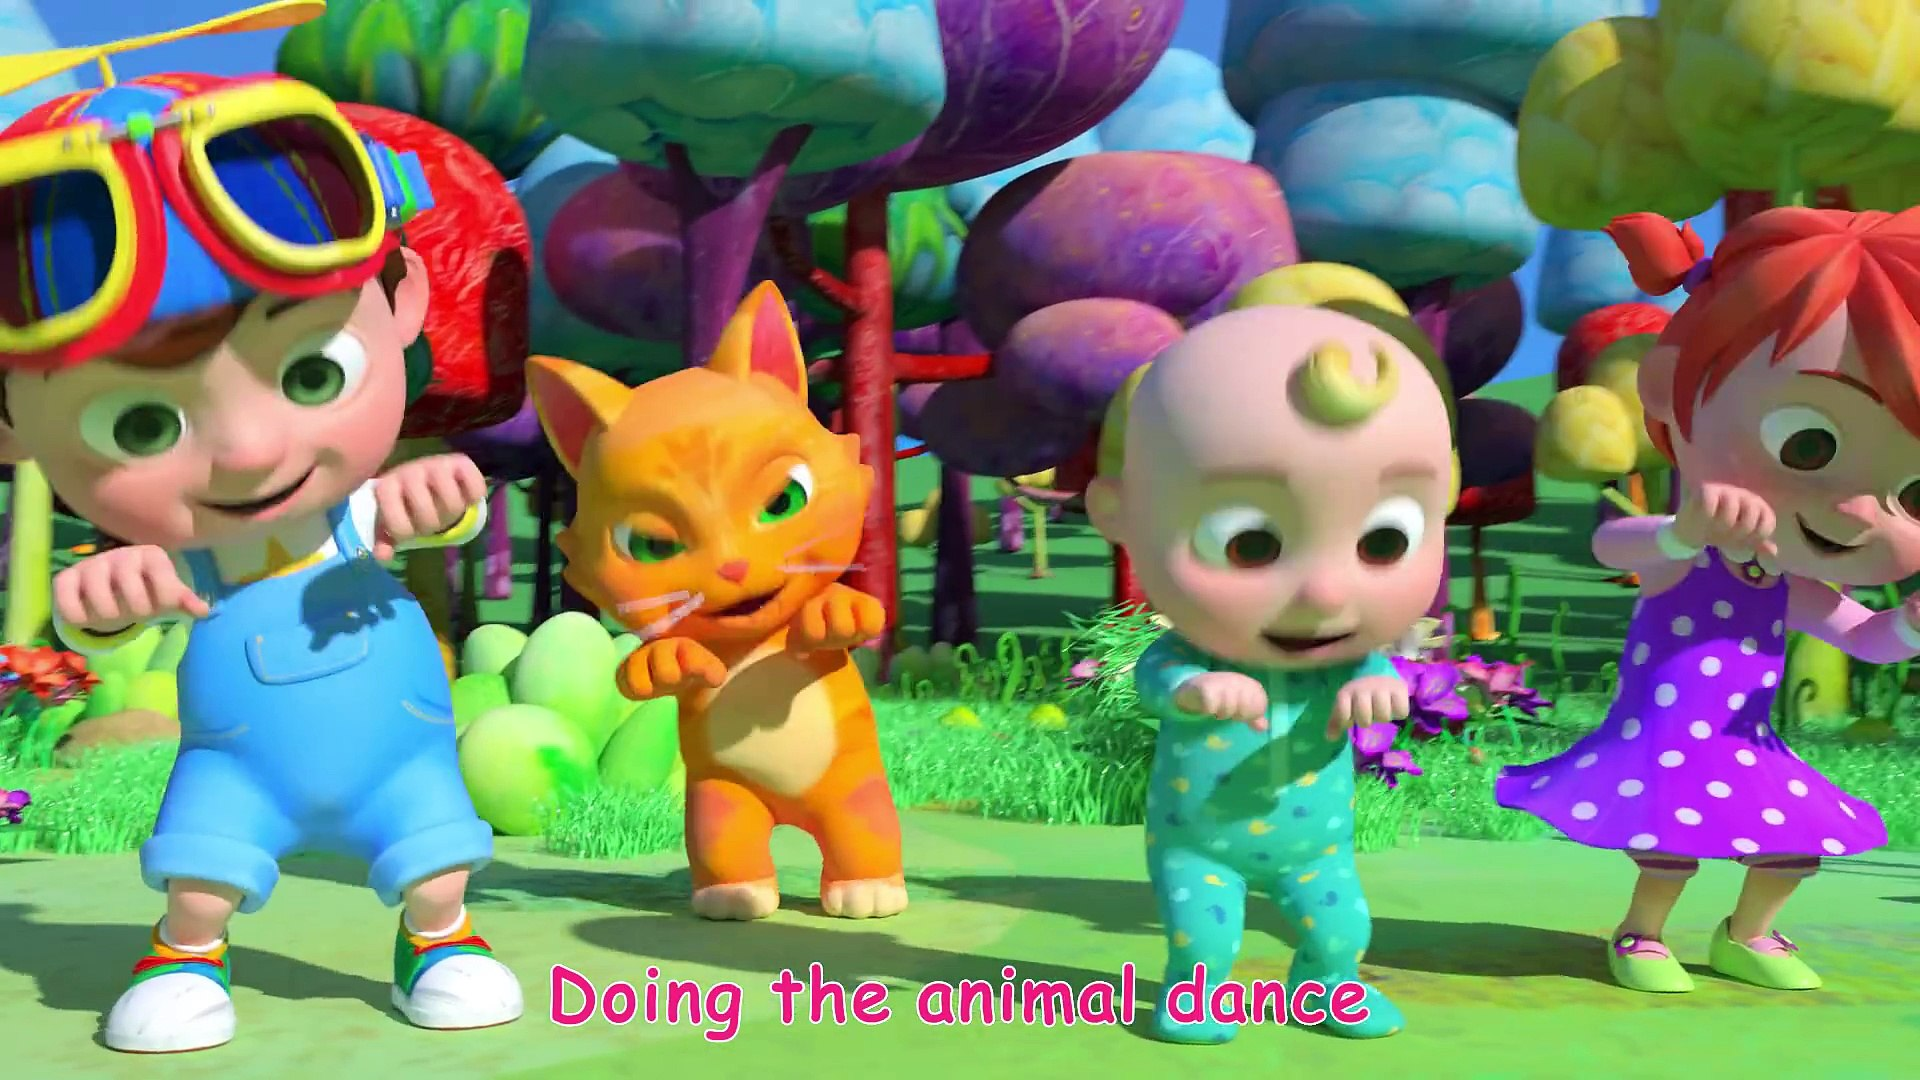 Animal Dance Song Cocomelon Abckidtv Nursery Rhymes Kids Songs Video Dailymotion